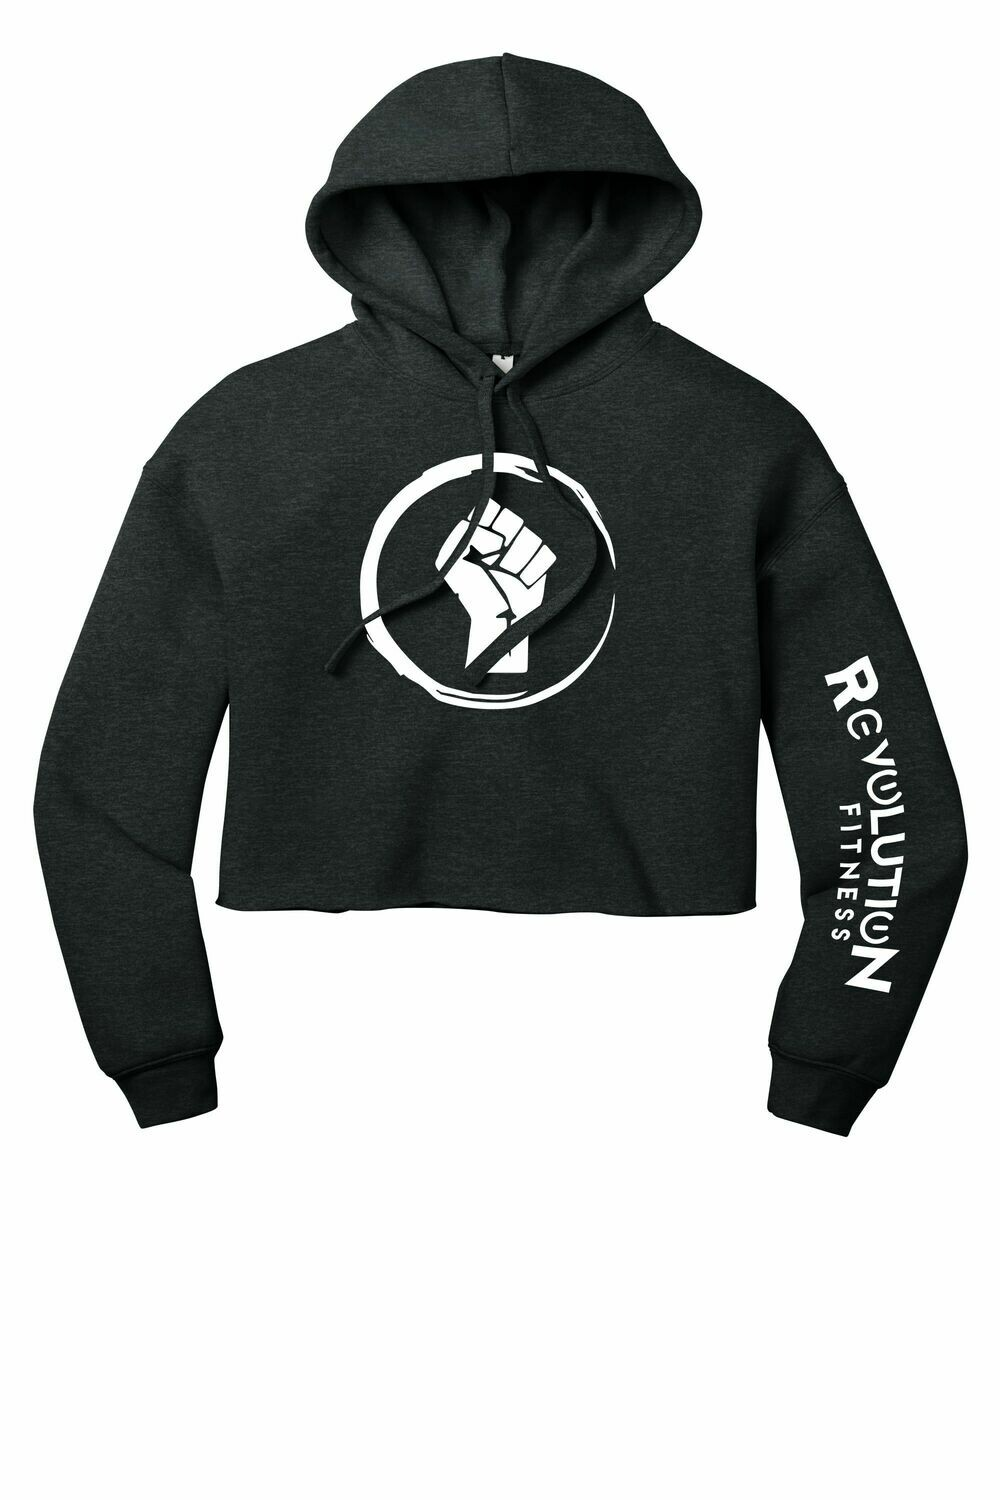 Revolution Fitness Cropped Hoodie